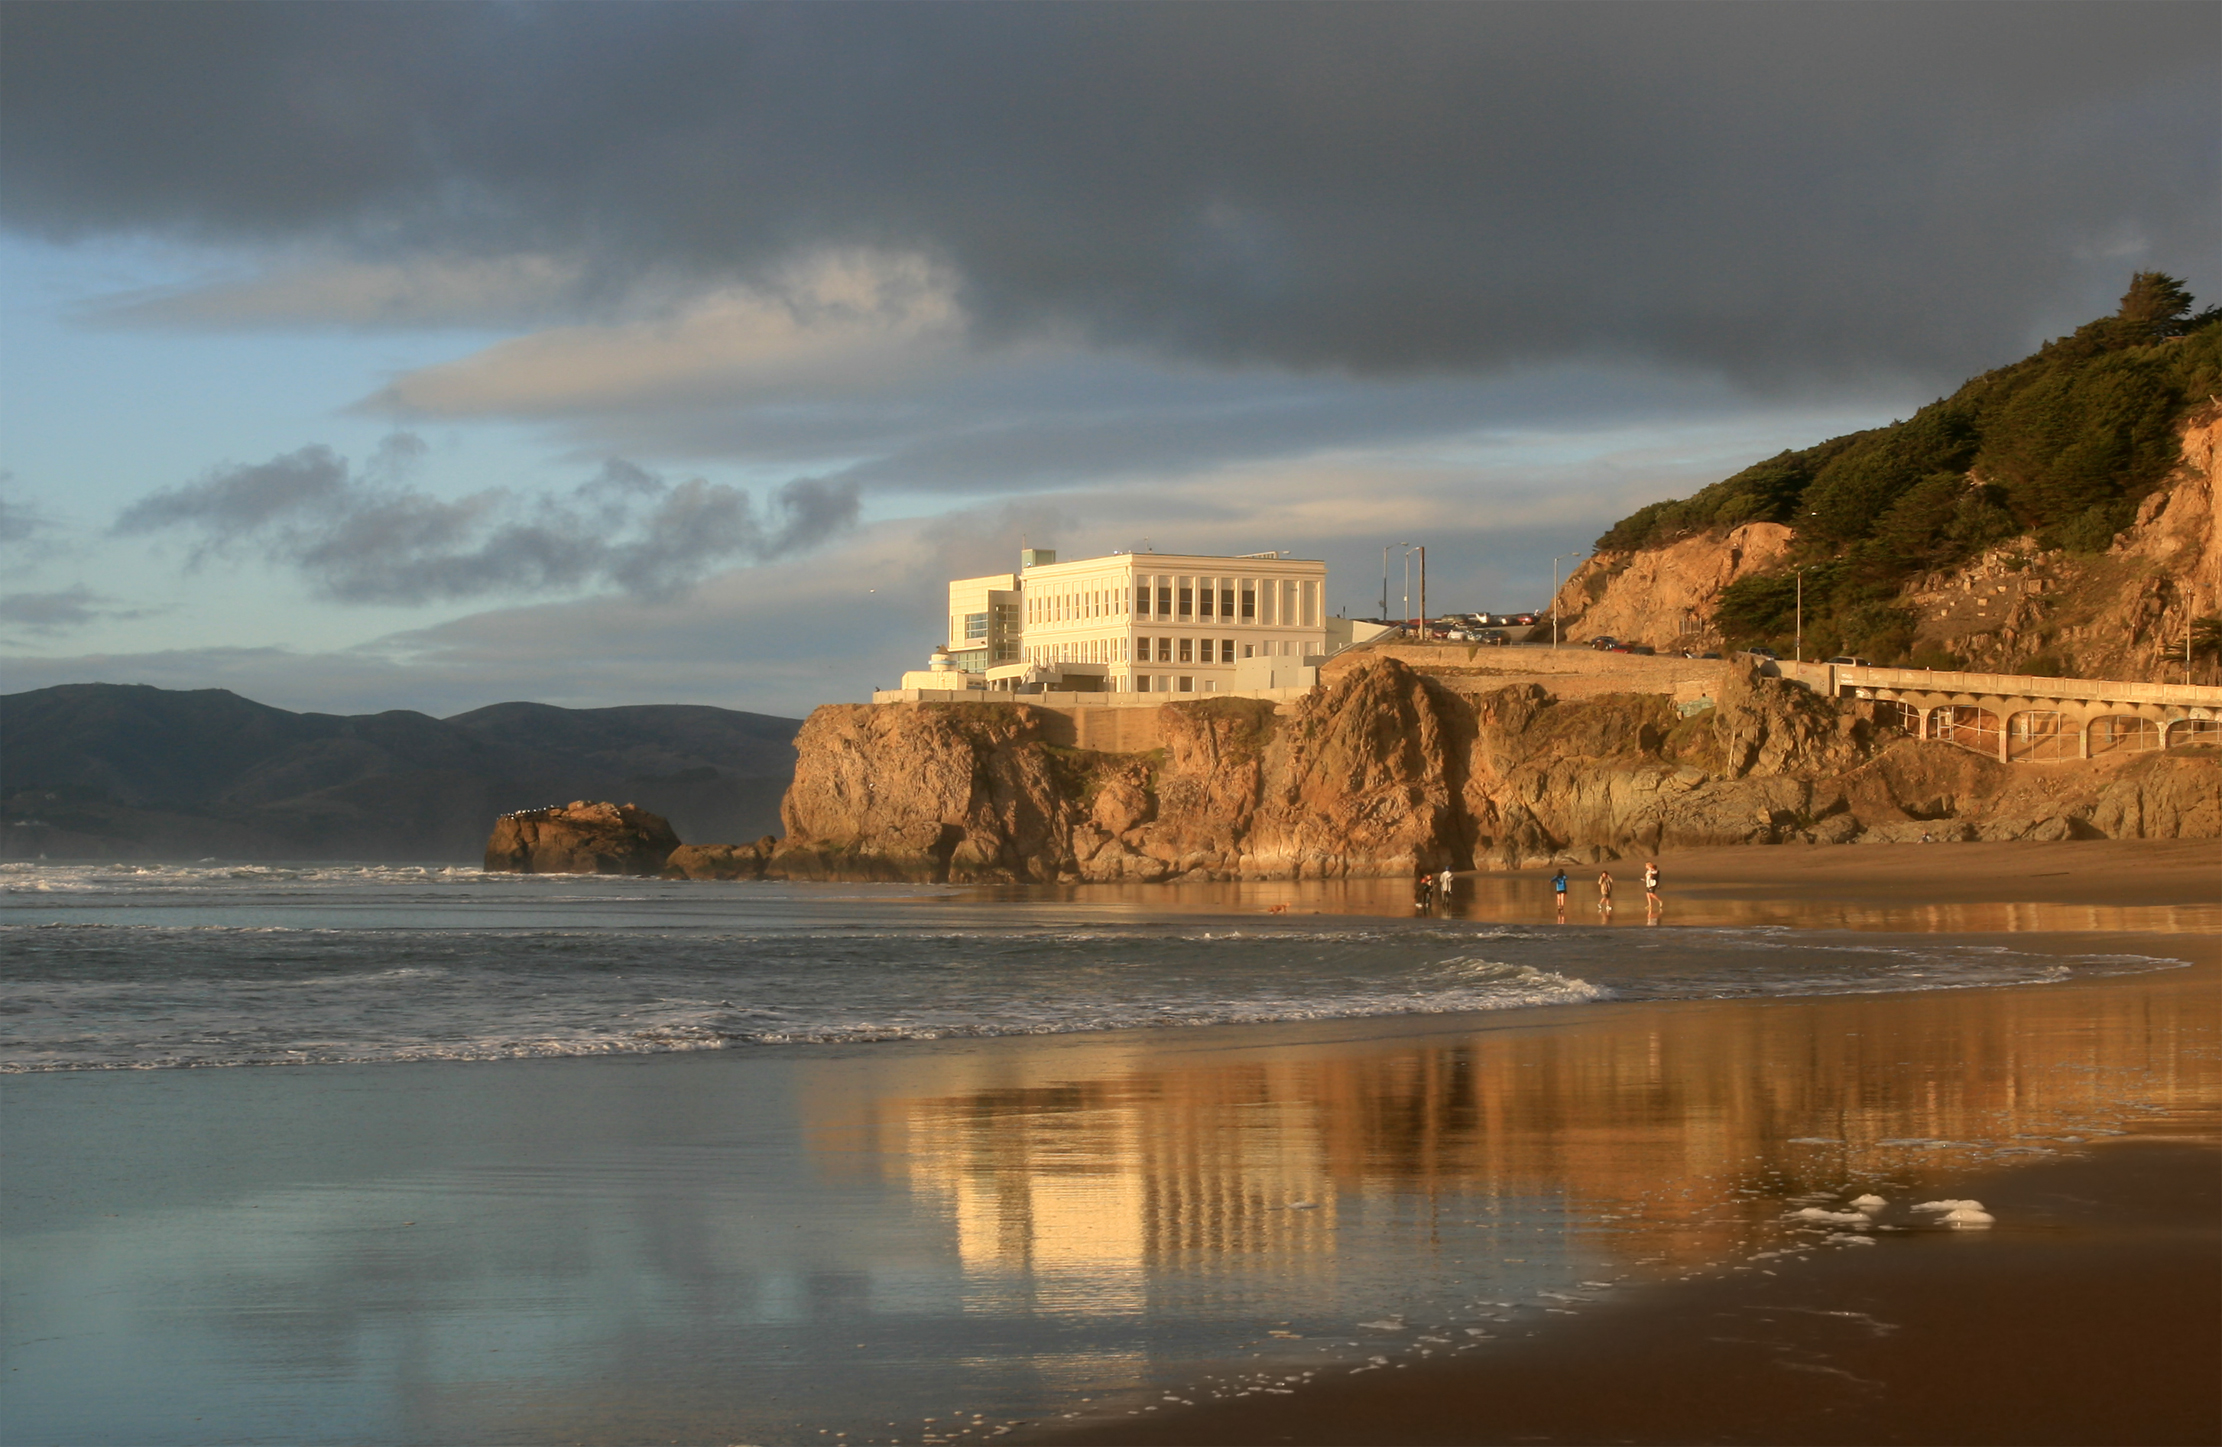 The Cliff House, built in 1909, is home to several restaurants with breathtaking ocean views.